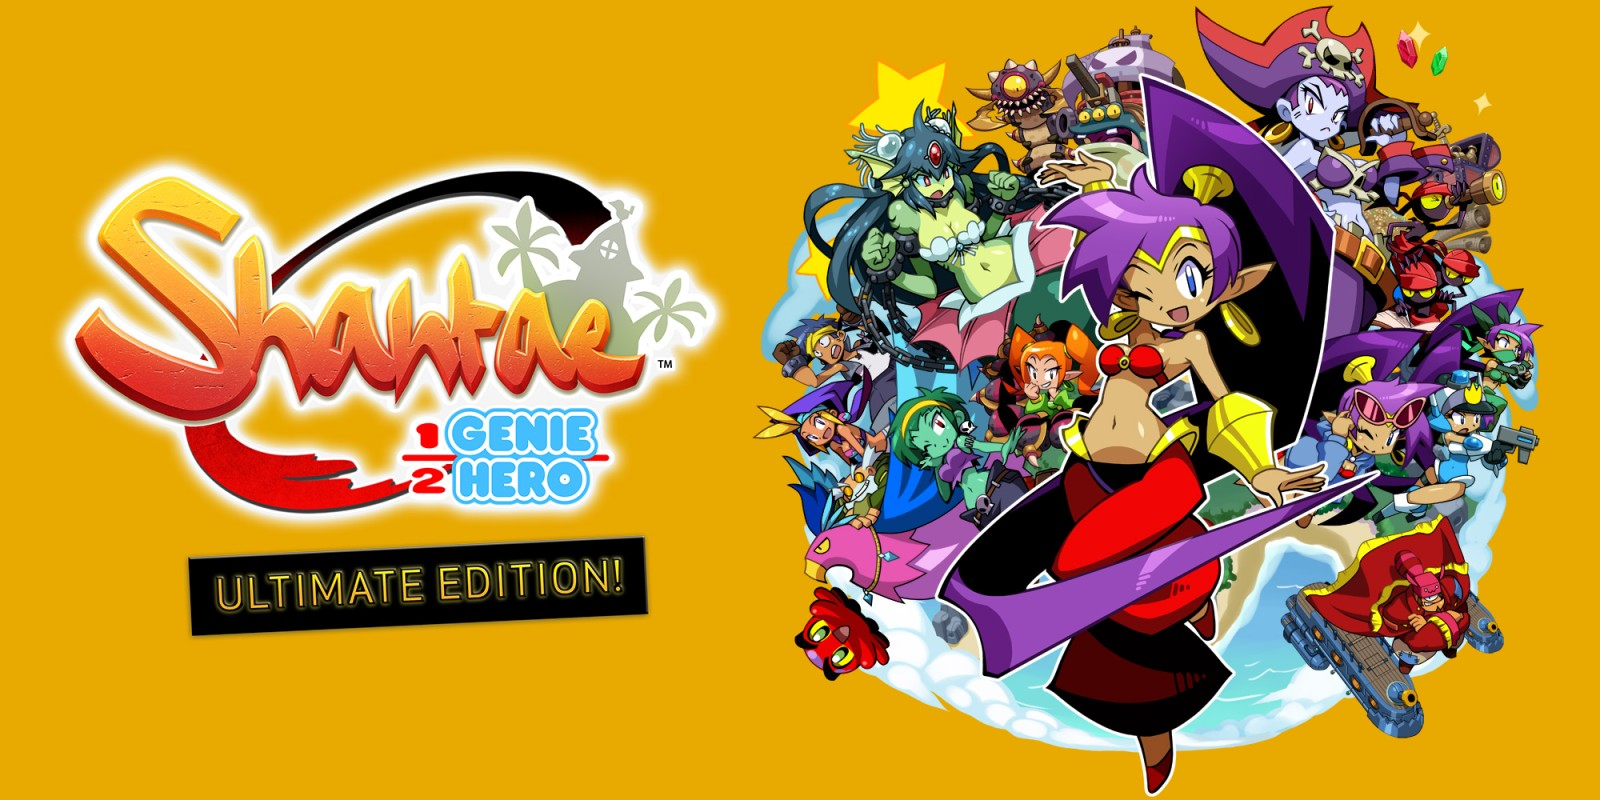 Shantae: Half- Genie Hero Ultimate Edition